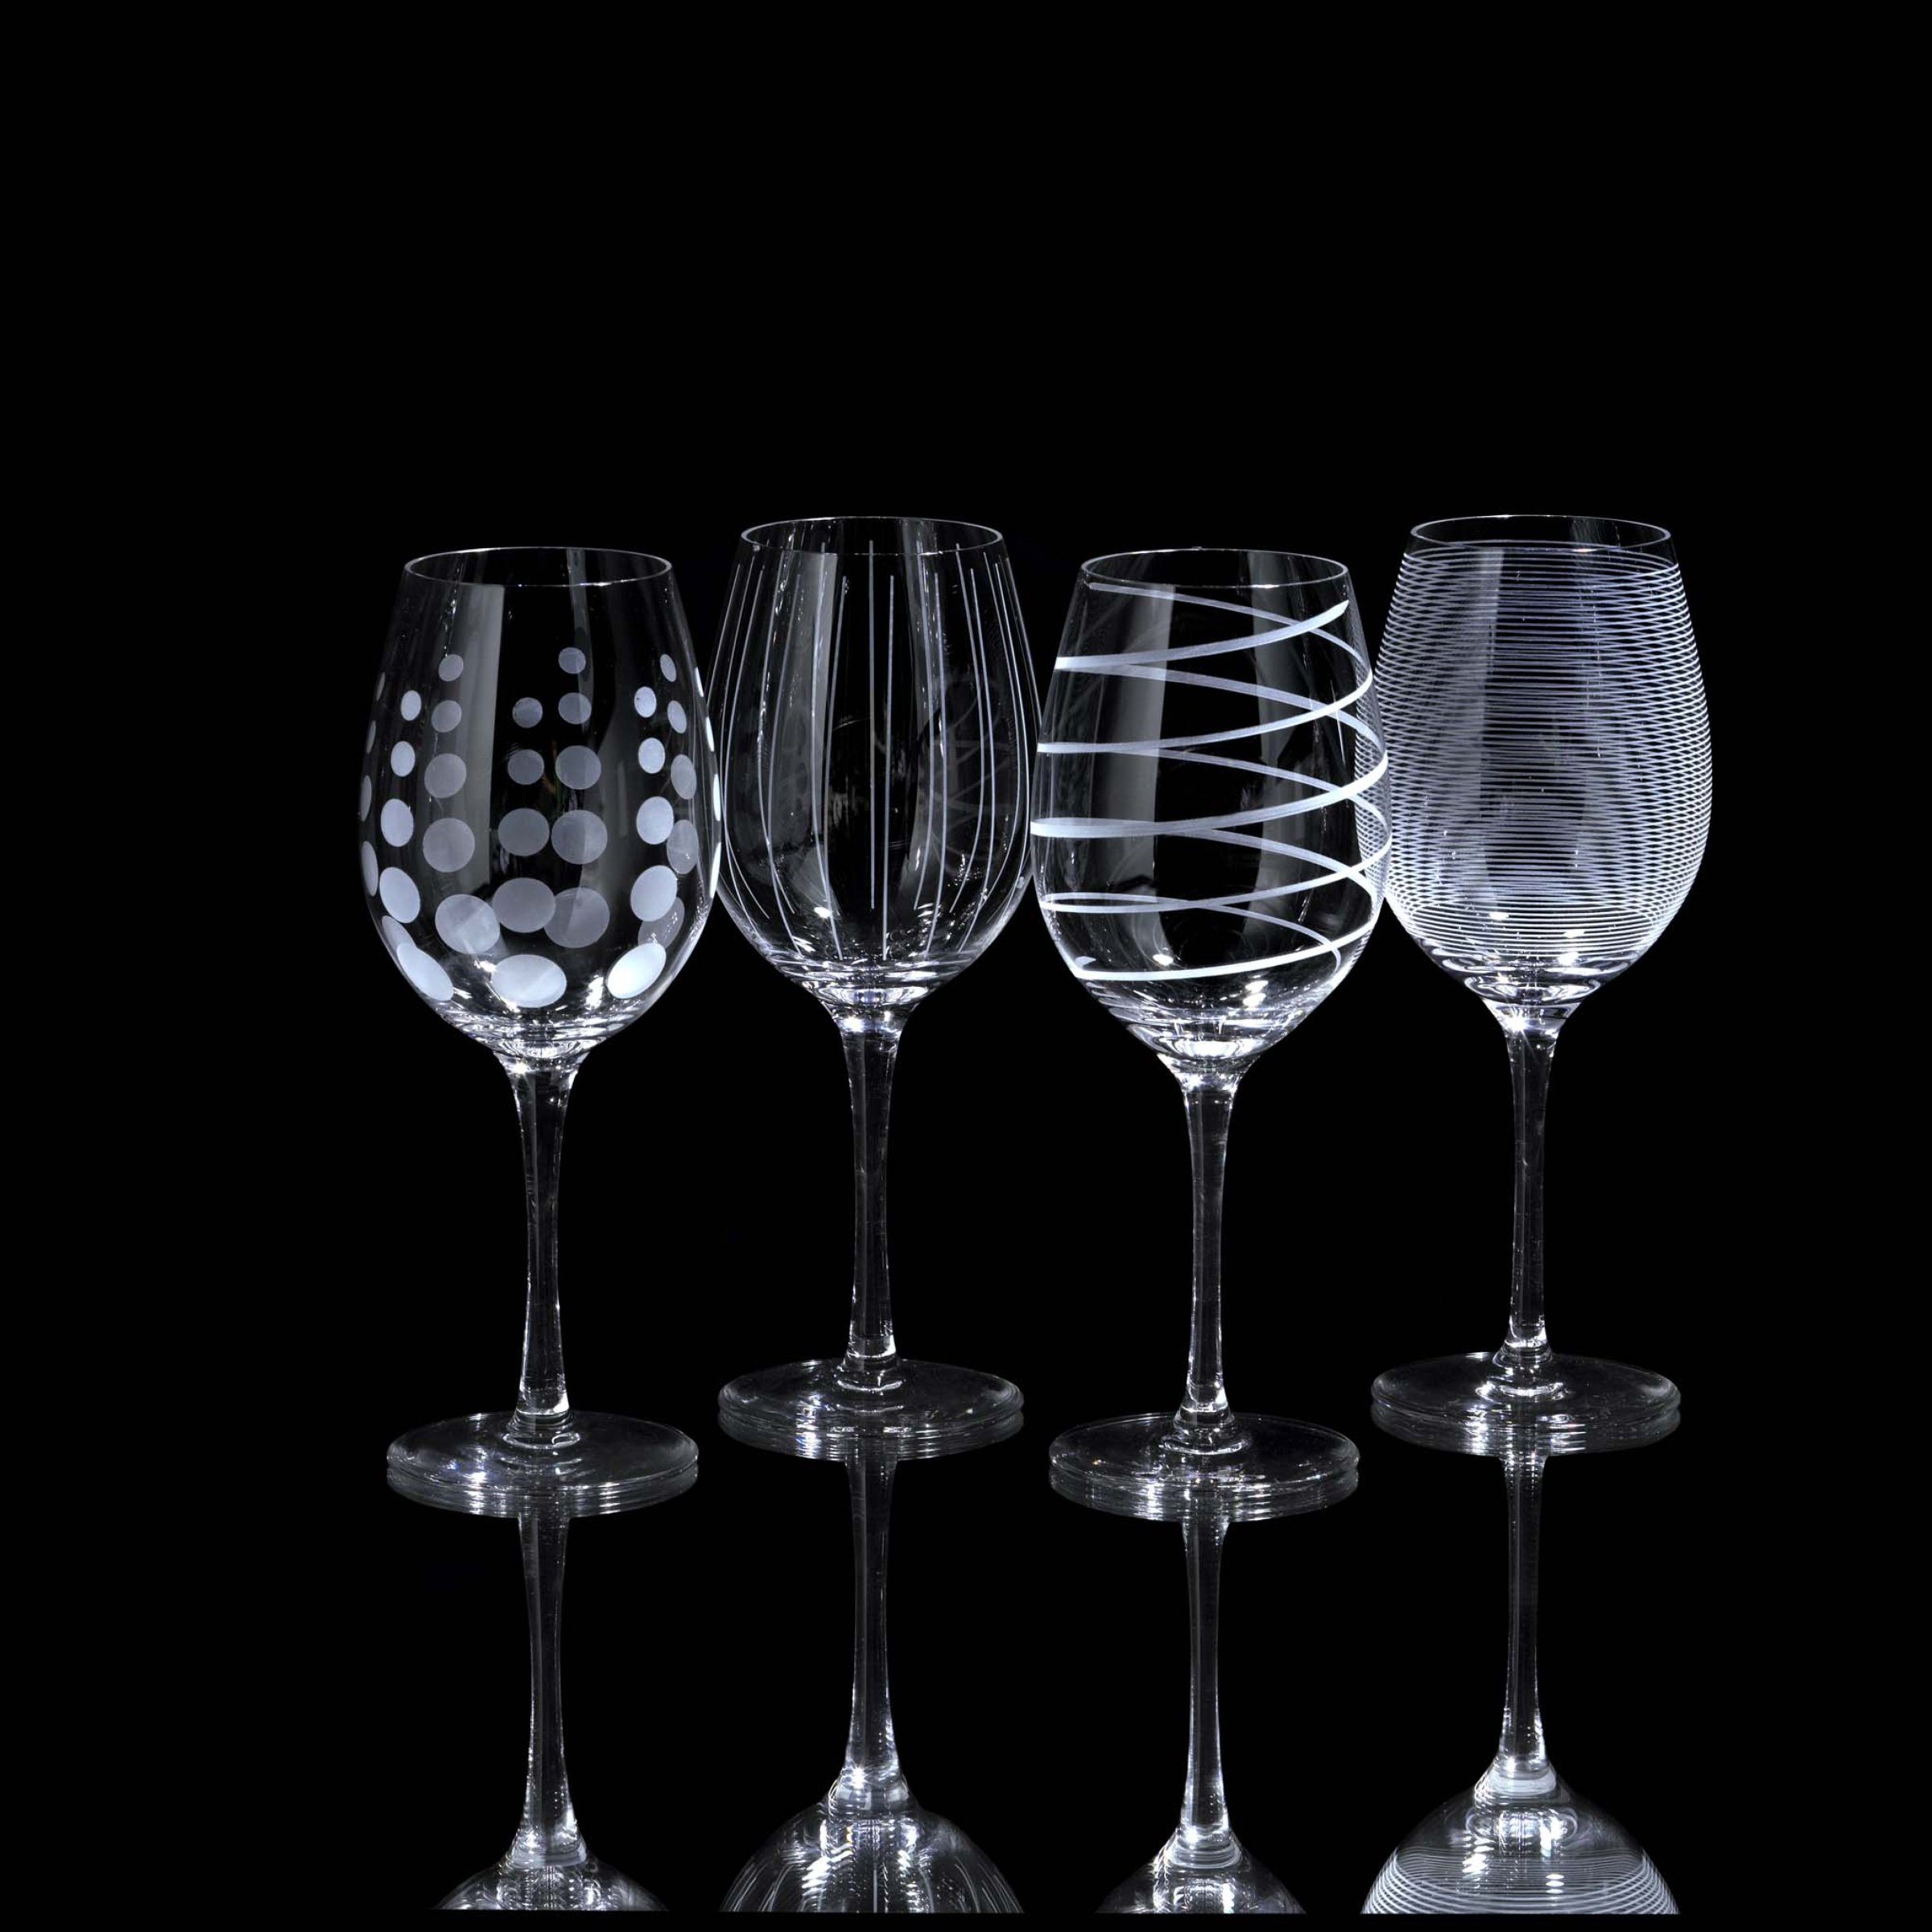 Mikasa Cheers Precision-Etched 16-oz White Wine Glasses, (Set of 4) by Mikasa (Image #2)